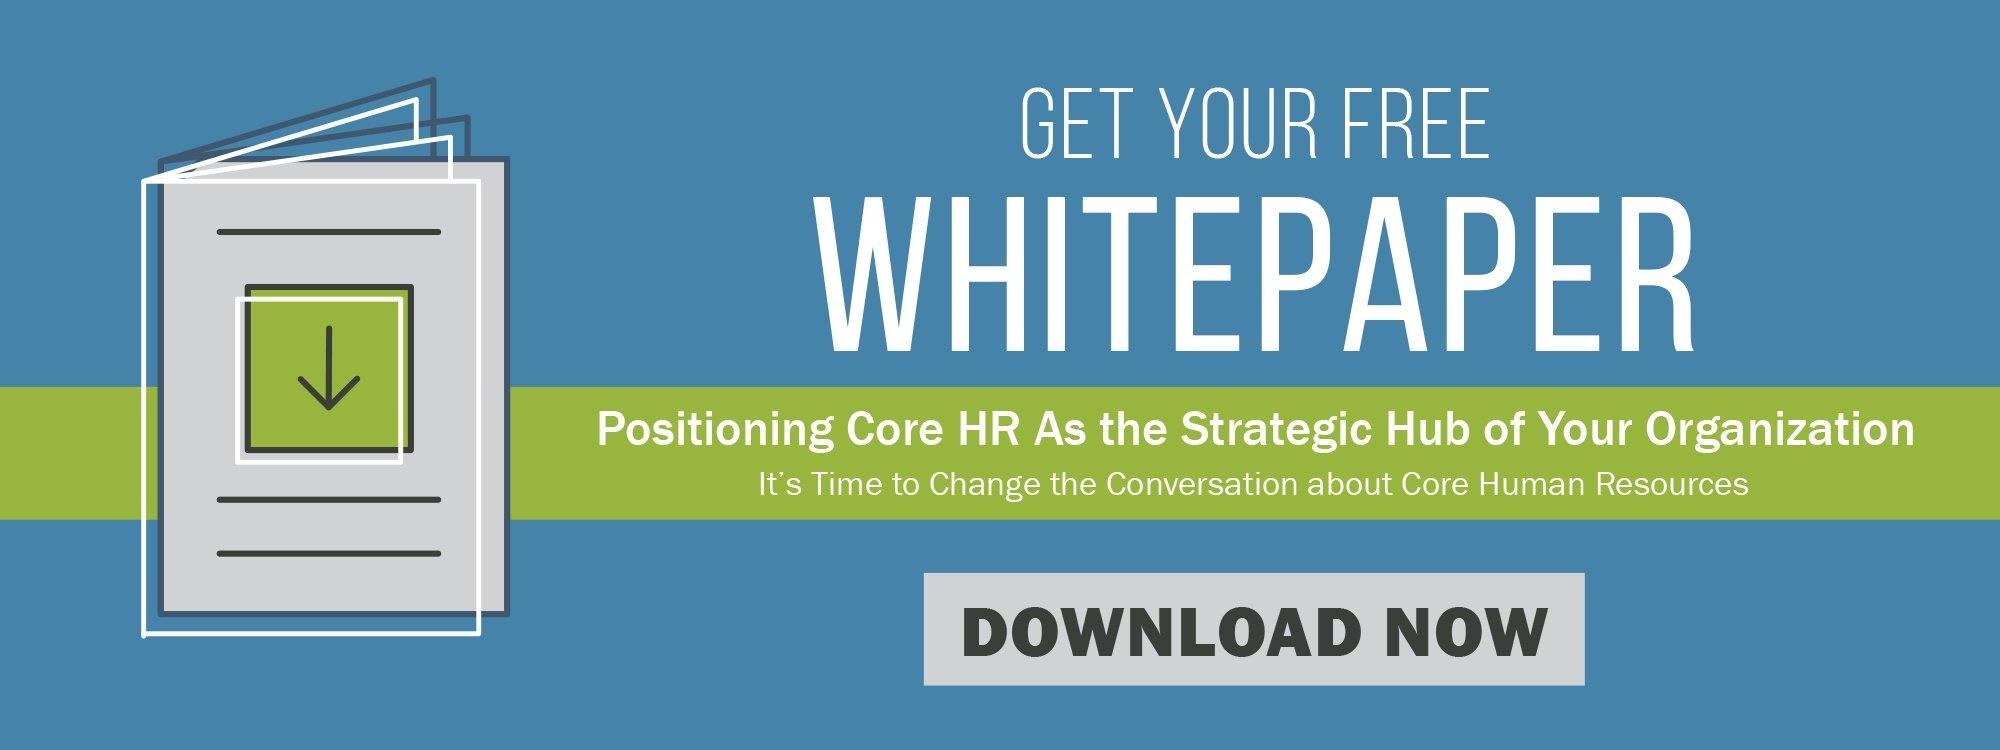 Positioning Core HR as the Strategic Hub